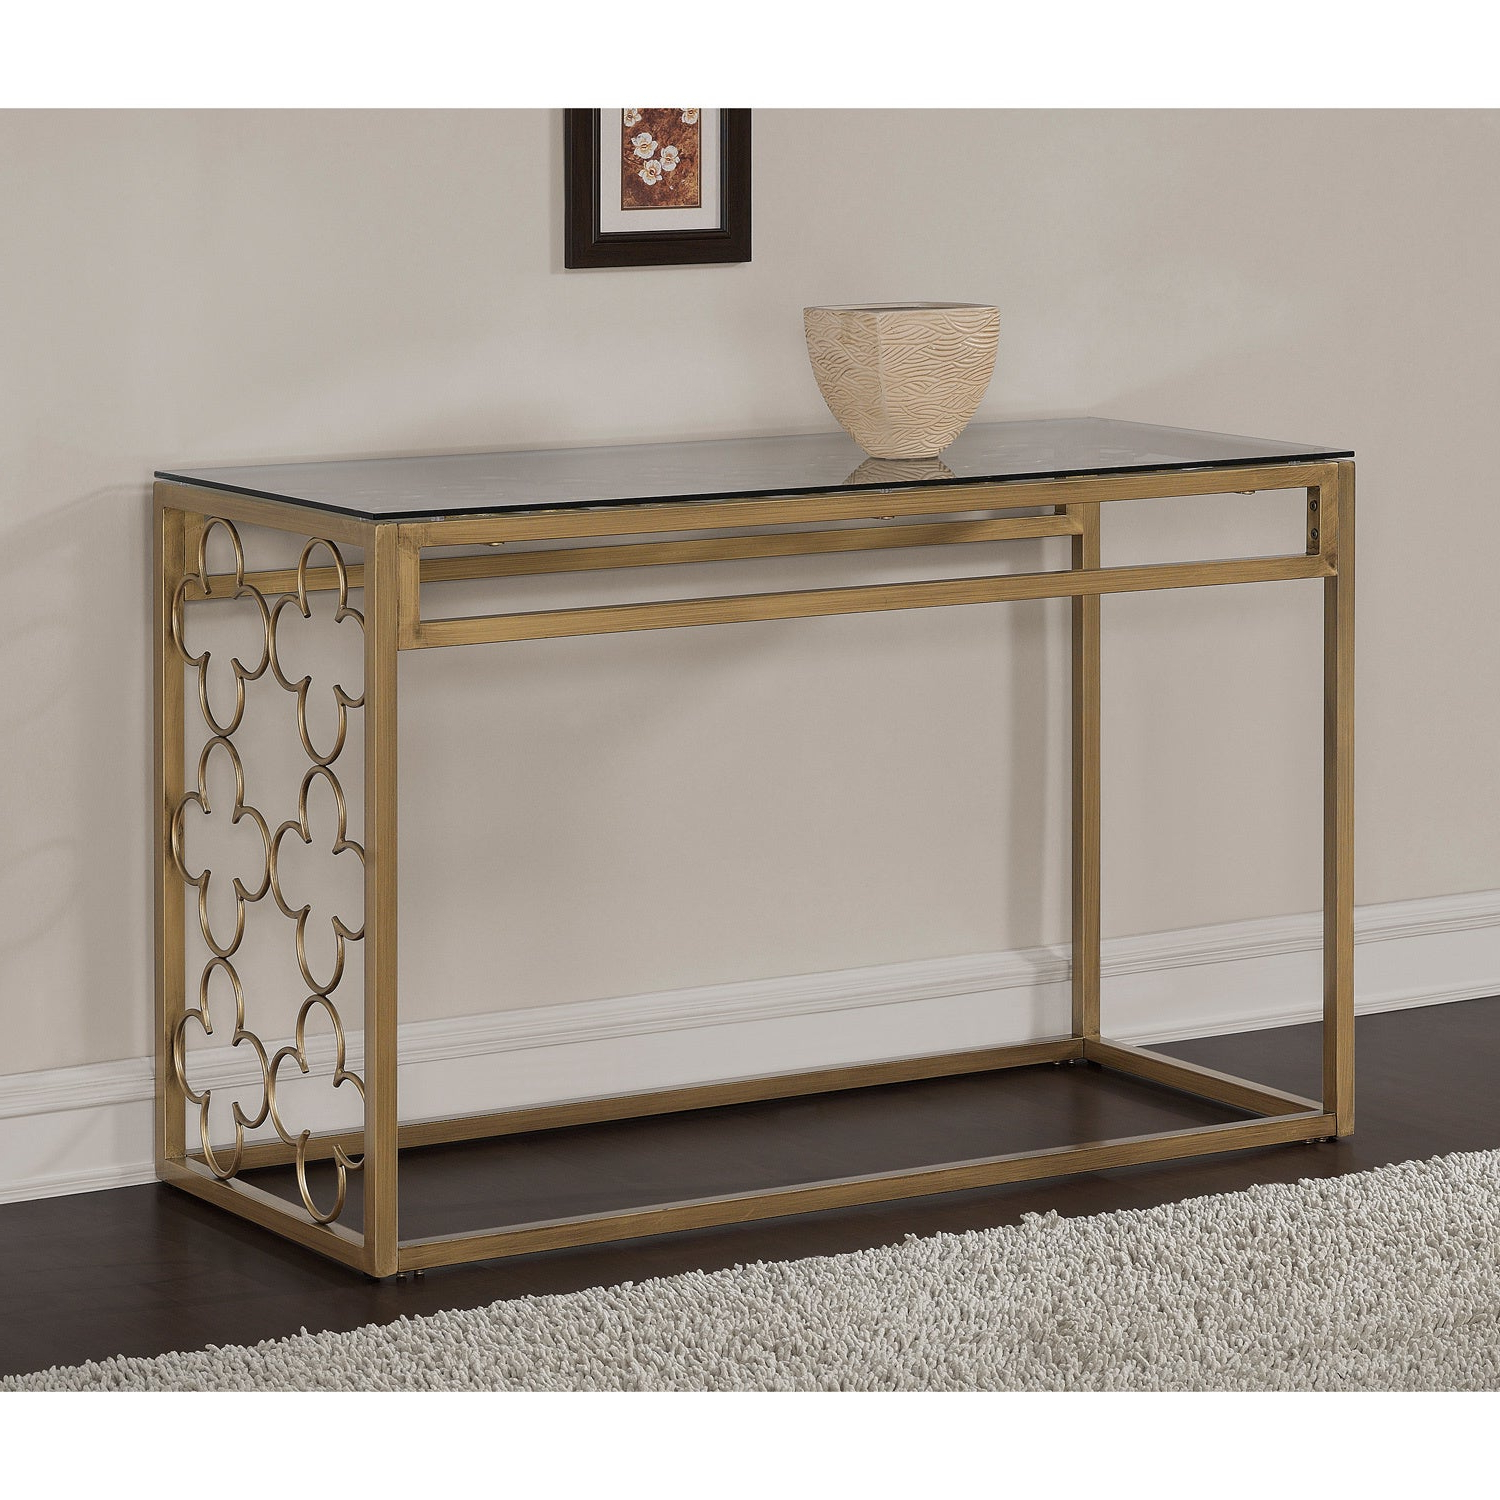 Most Recent The Curated Nomad Quatrefoil Goldtone Metal And Glass Coffee Tables Intended For The Curated Nomad Quatrefoil Goldtone Metal And Glass Sofa Table (View 7 of 20)